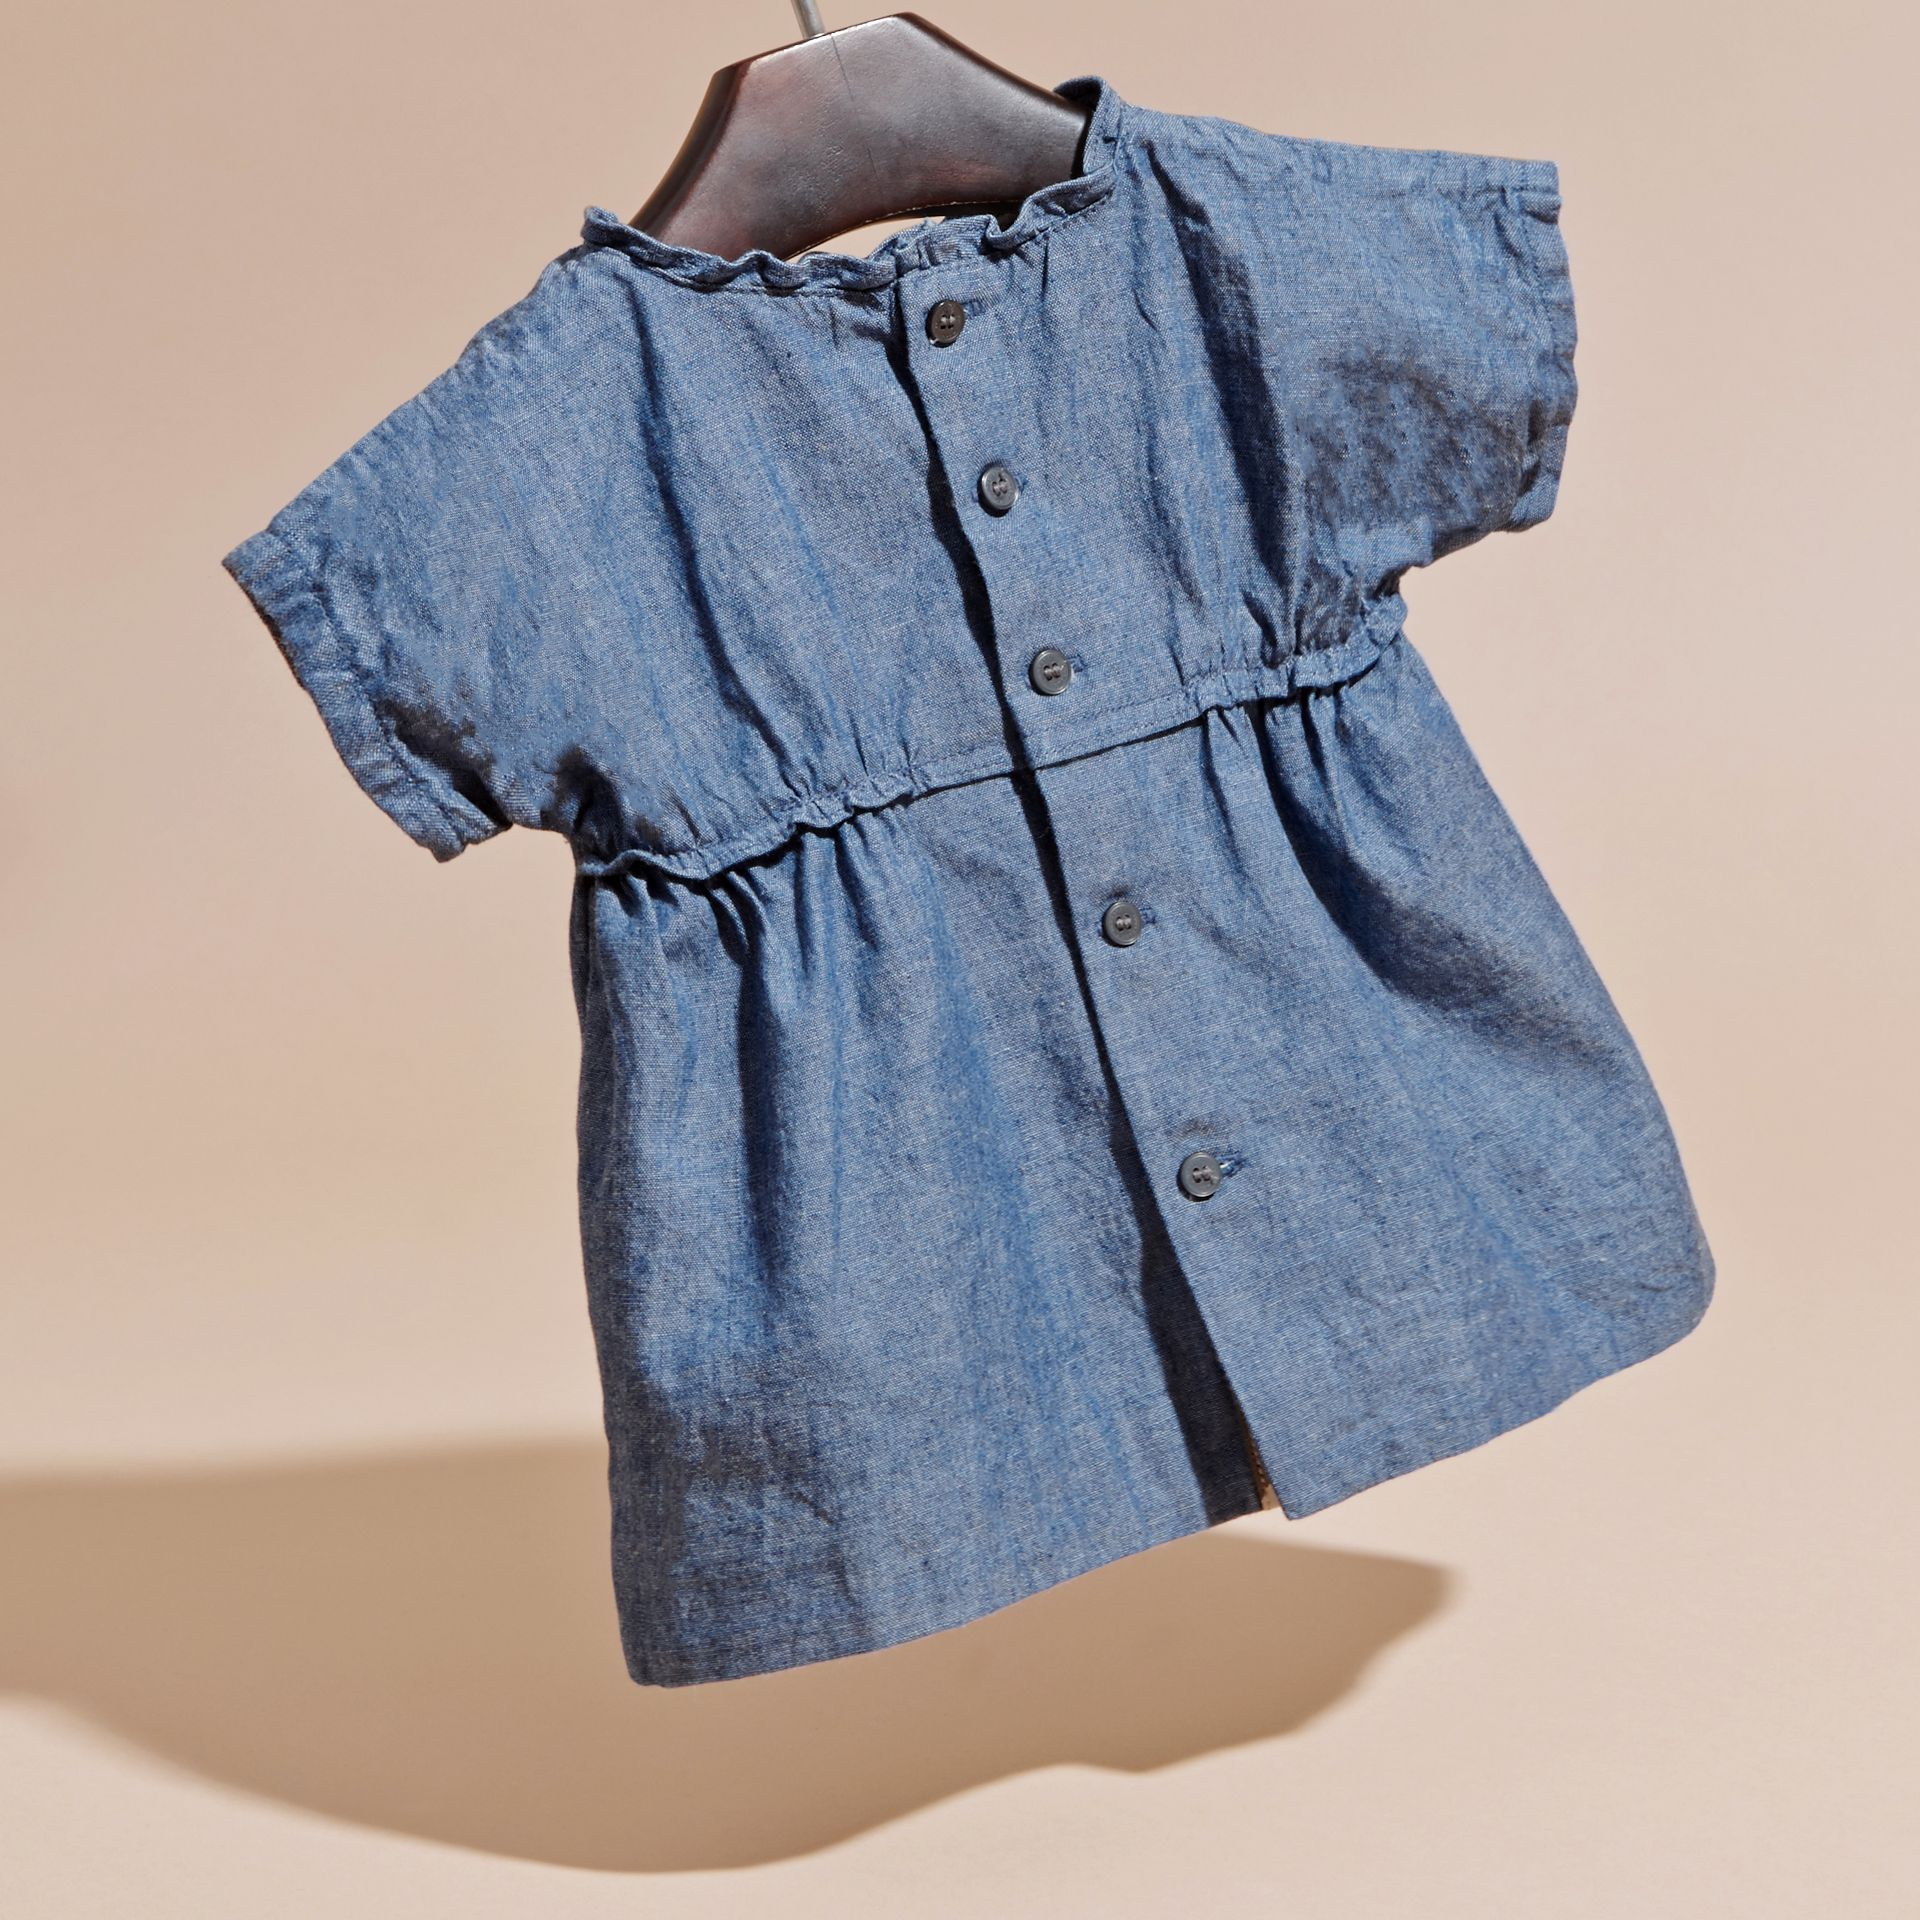 Ruffle Detail Cotton Chambray Top - gallery image 4